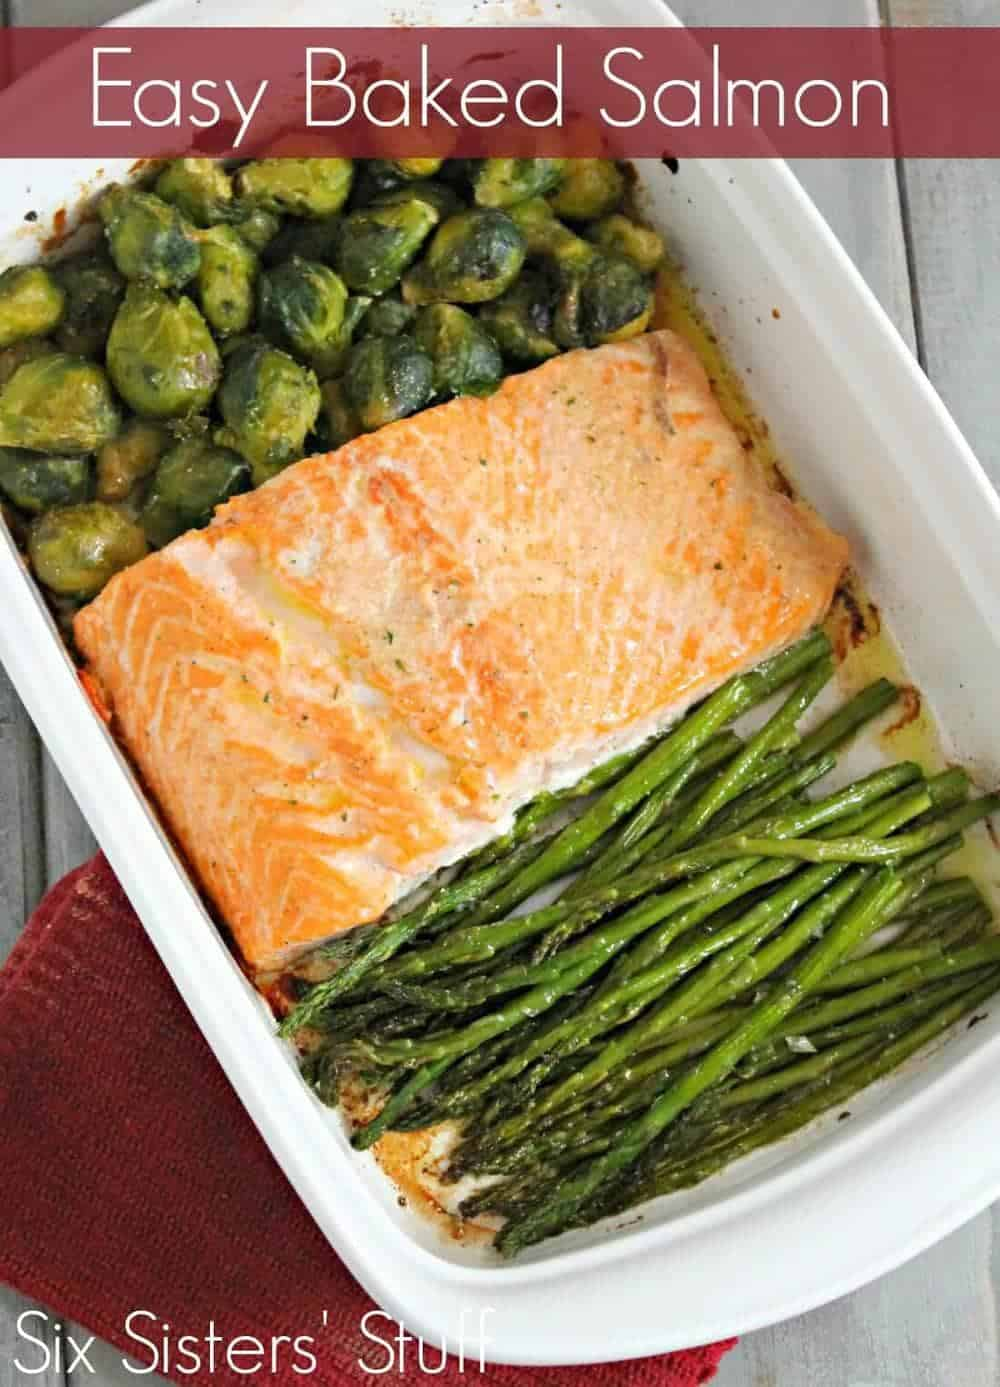 Heart healthy salmon recipes easy